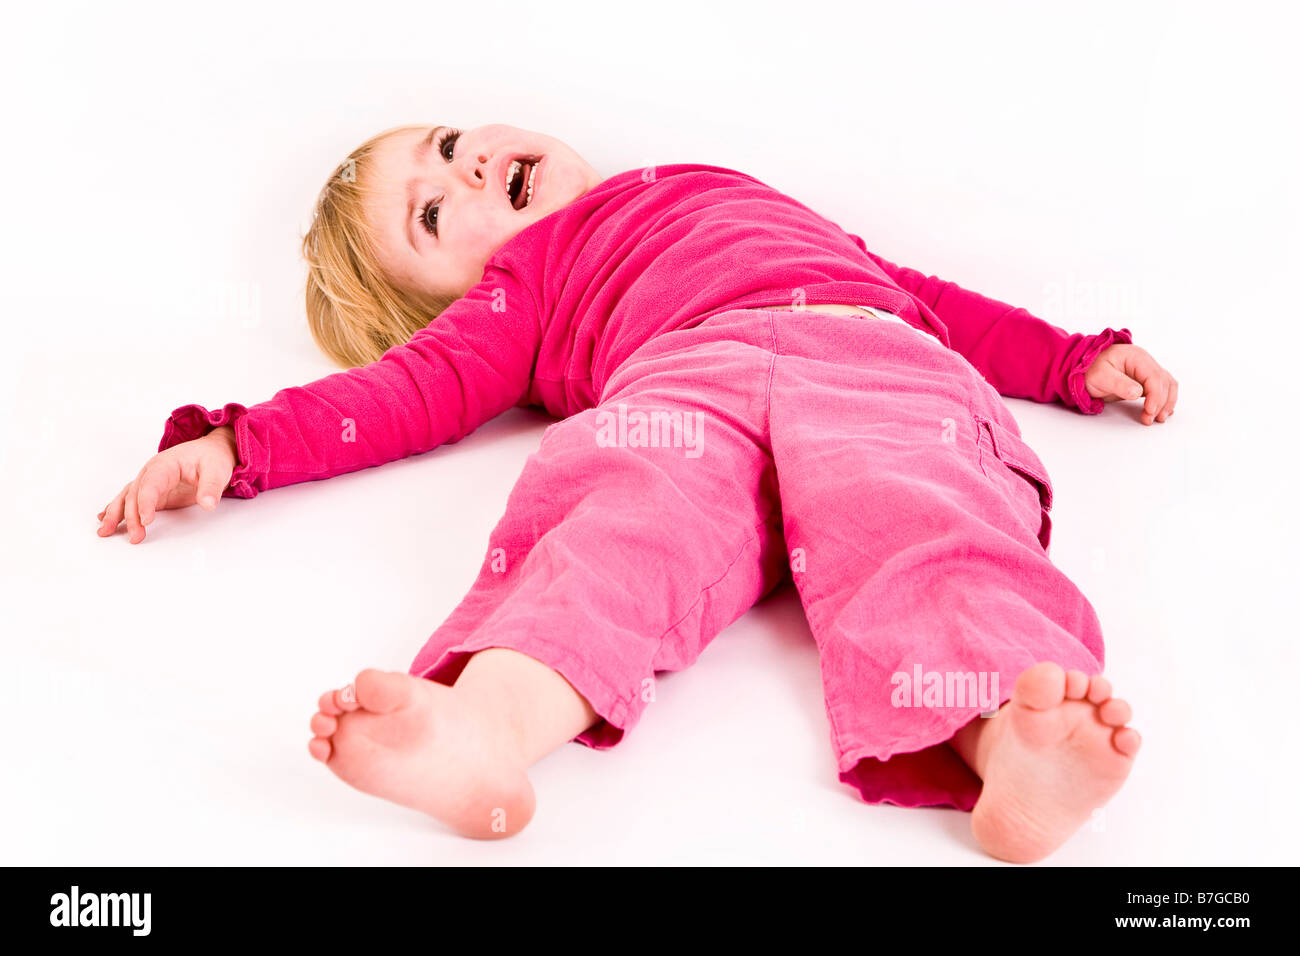 Young female having a temper tantrum on the floor - Stock Image